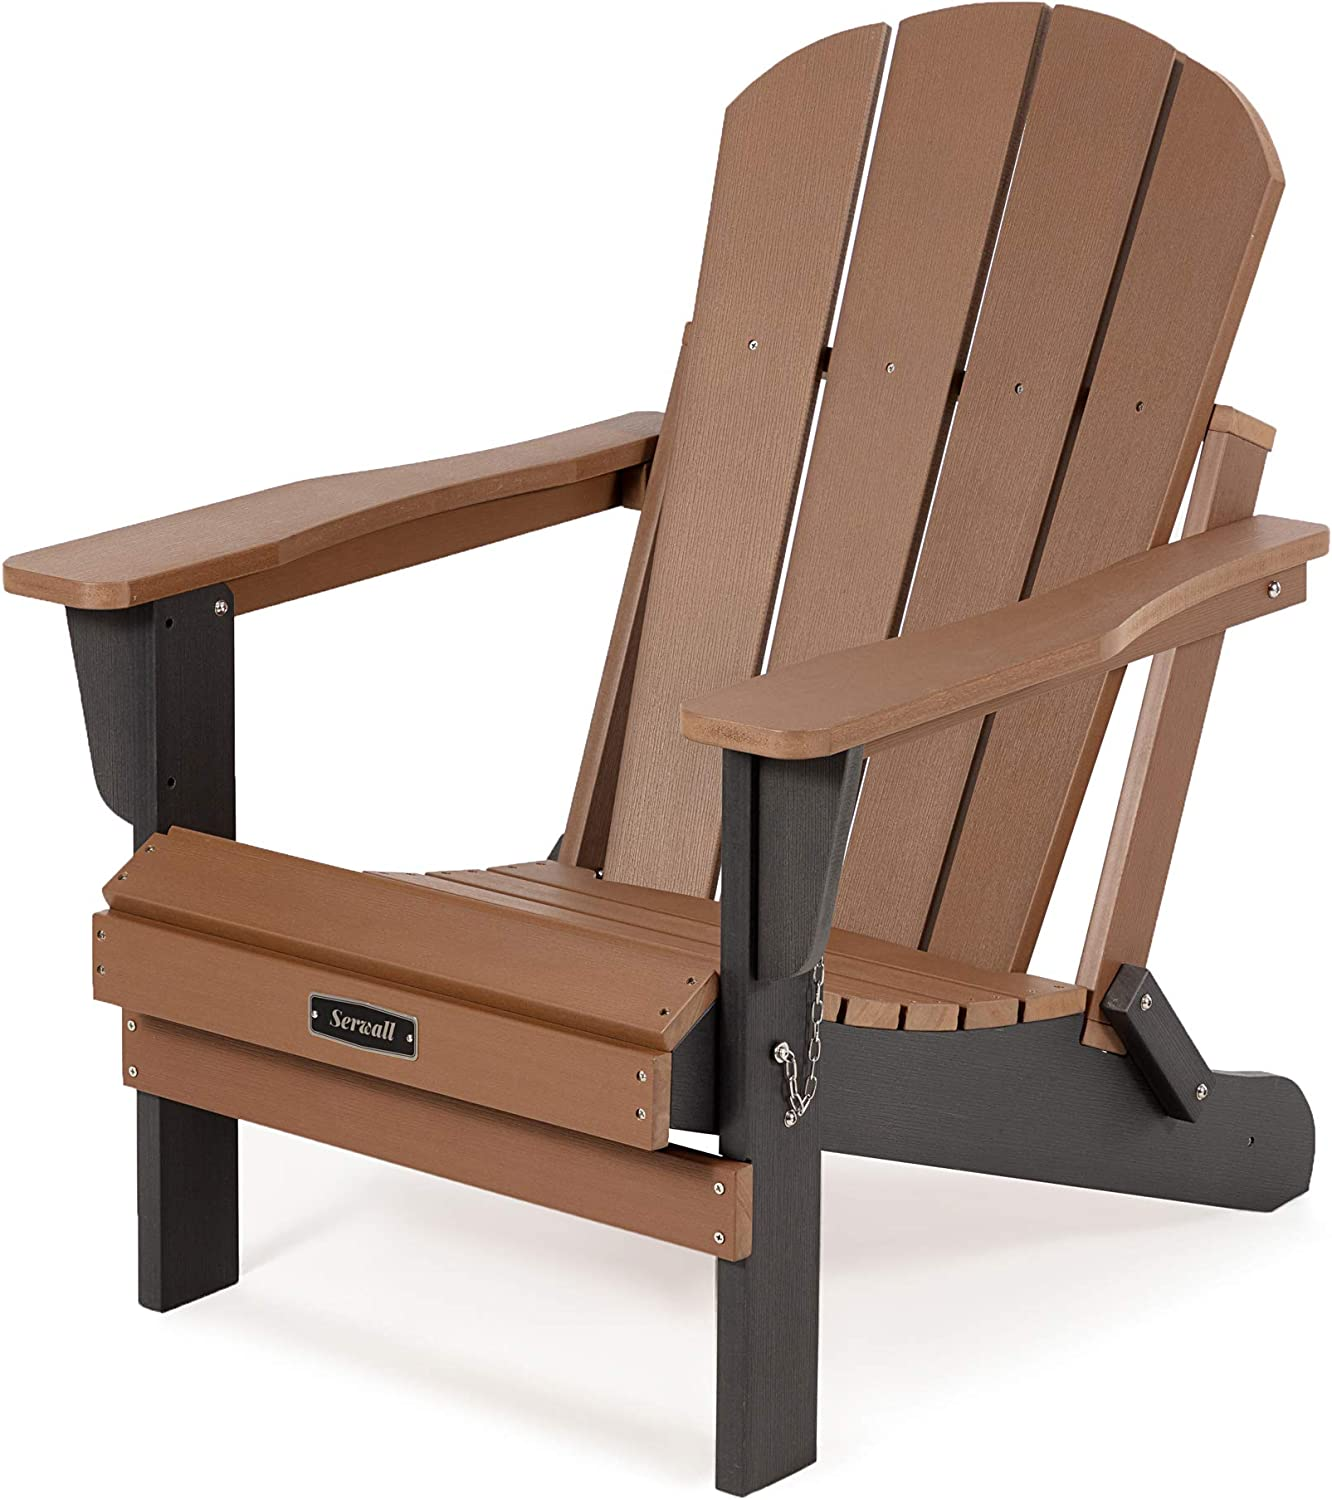 SERWALL Folding Adirondack Chair Patio Chairs Lawn Chair Outdoor Chairs Painted Adirondack Chair Weather Resistant- Brown & White Ideal for Lawn, Garden, Firepit